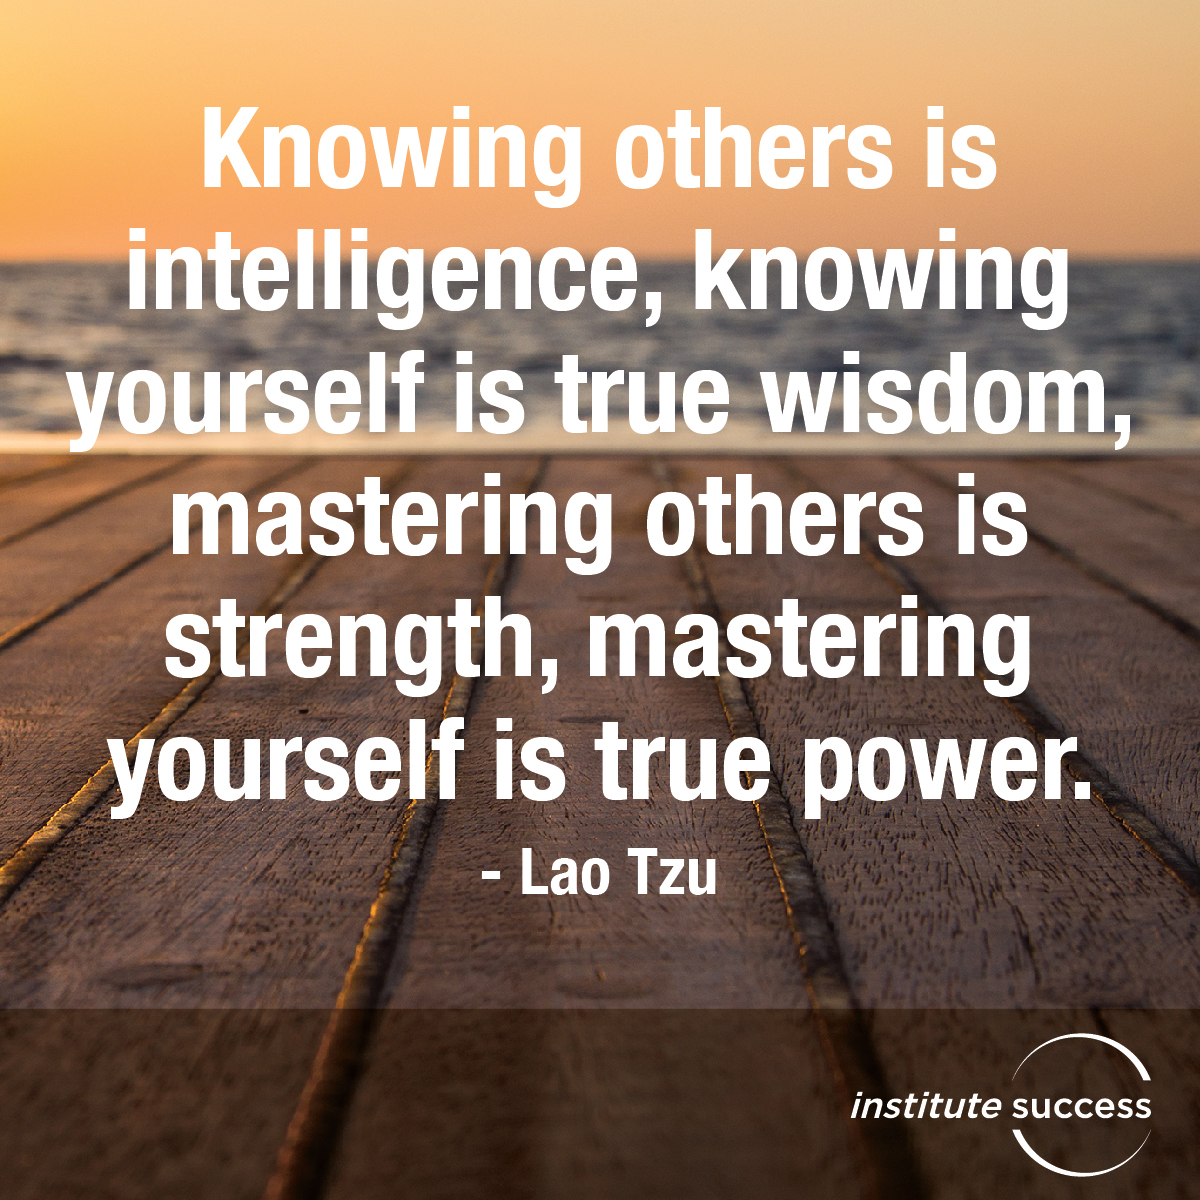 Knowing others is intelligence, Knowing yourself is true wisdom, Mastering others is strength, Mastering yourself is true power – Lao Tzu